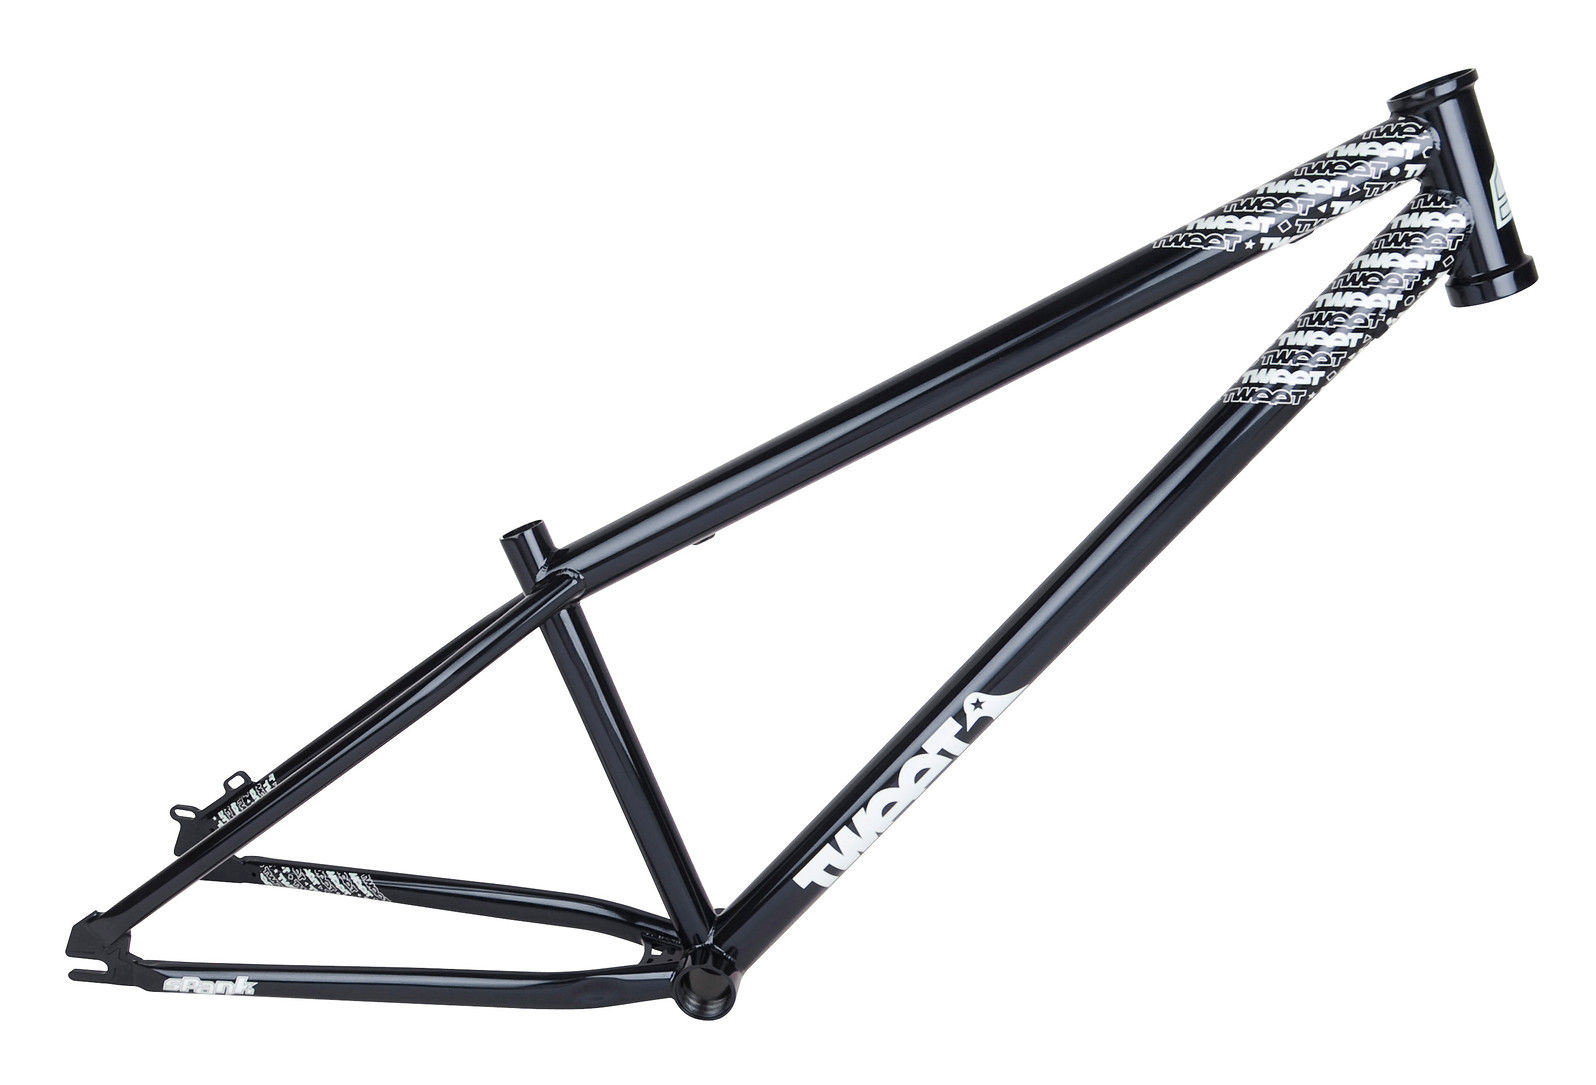 Spank Tweet Frame - Reviews, Comparisons, Specs - Mountain Bike ...